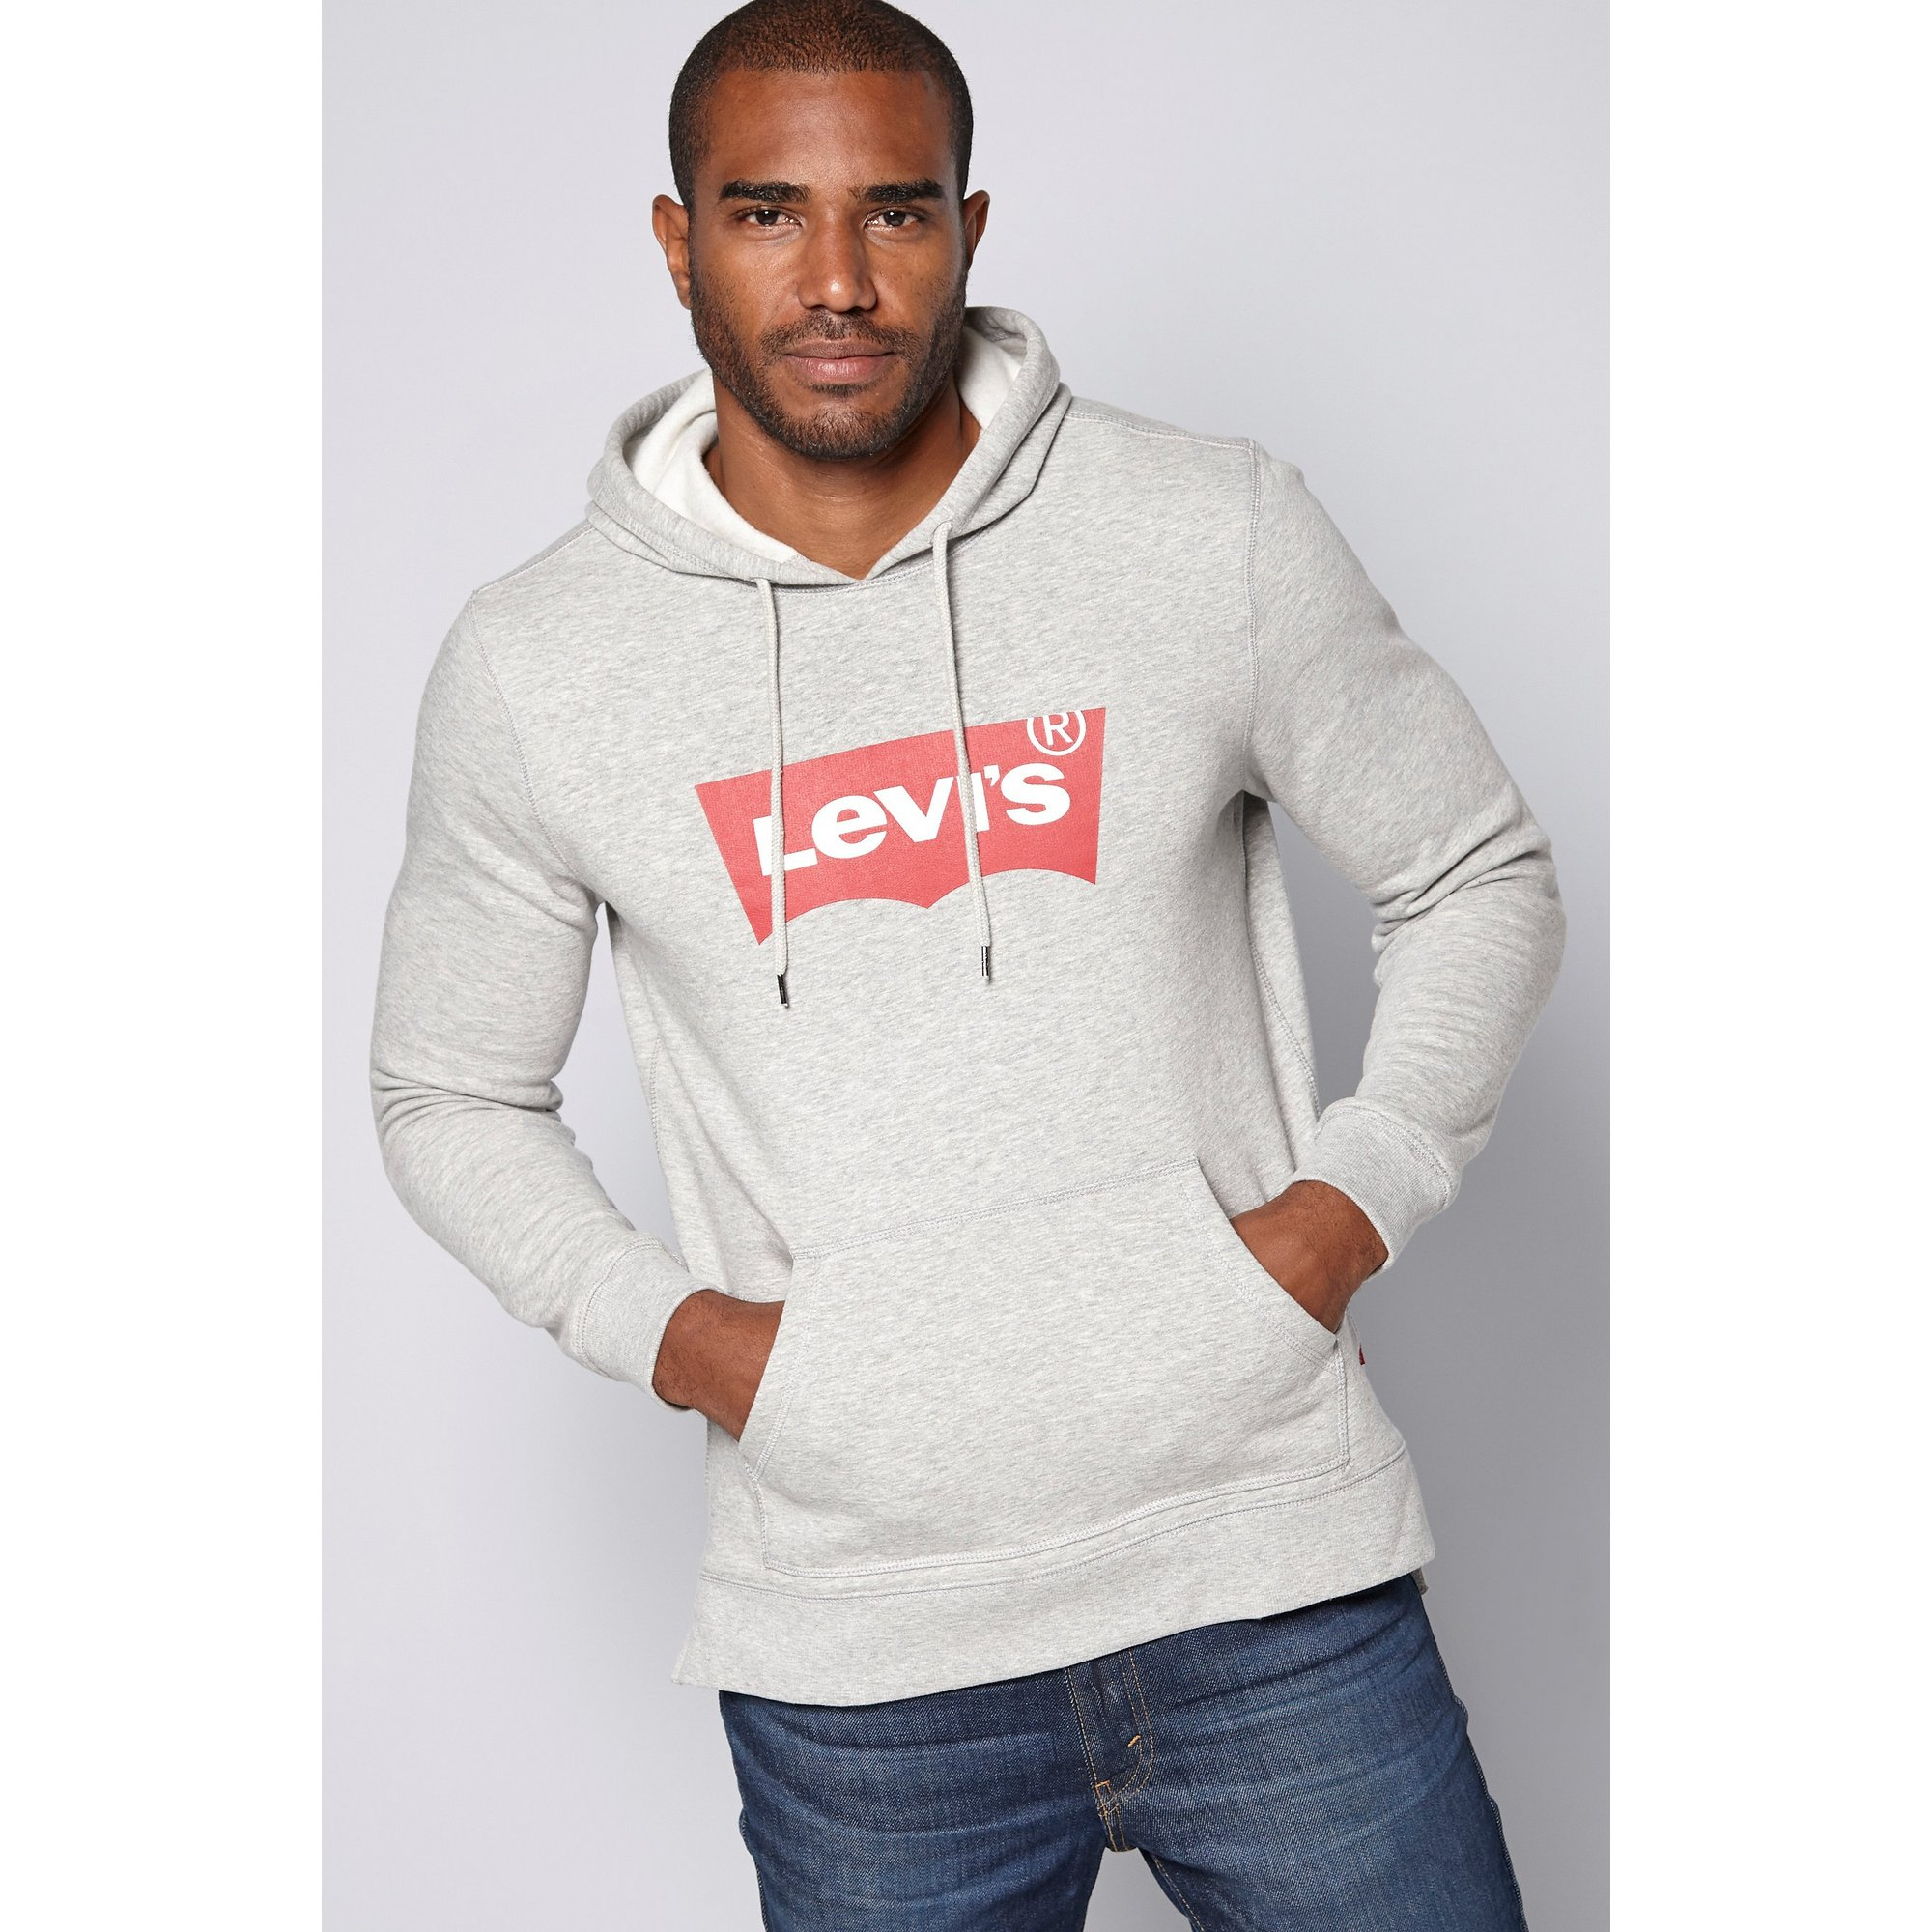 Image of Levis Large Chest Branding Grey Hoody